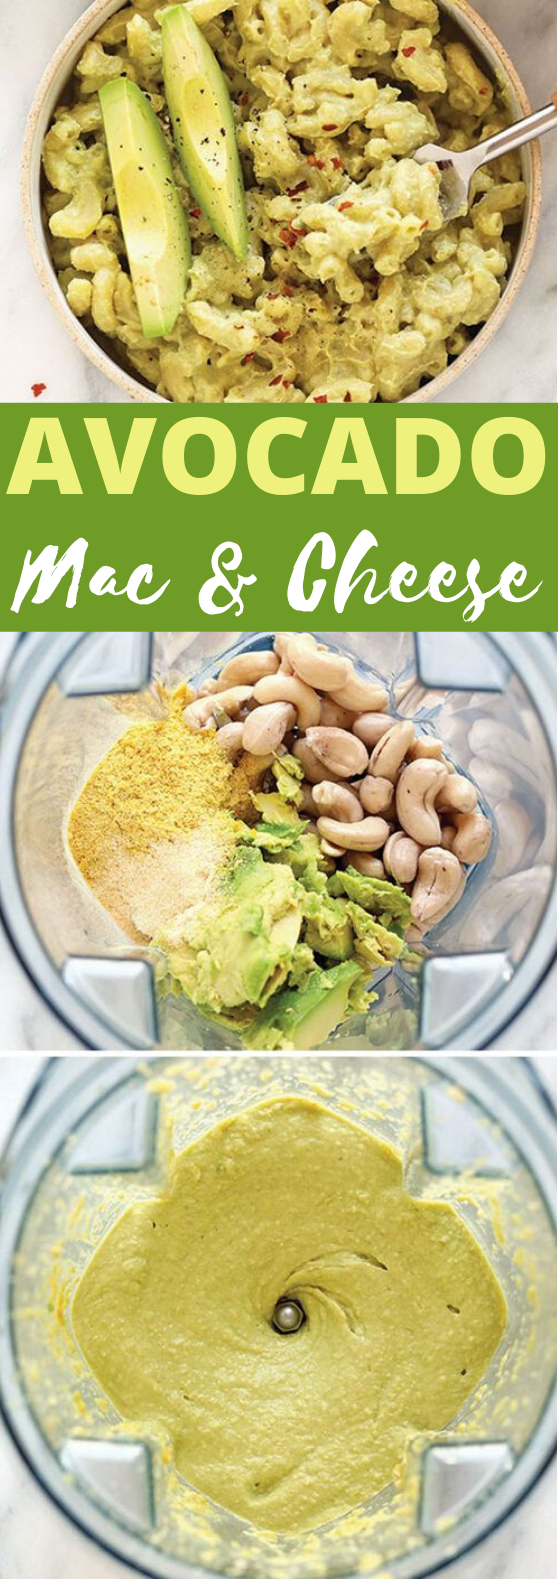 VEGAN AVOCADO MAC AND CHEESE #vegan #dinner #pasta #glutenfree #healthy